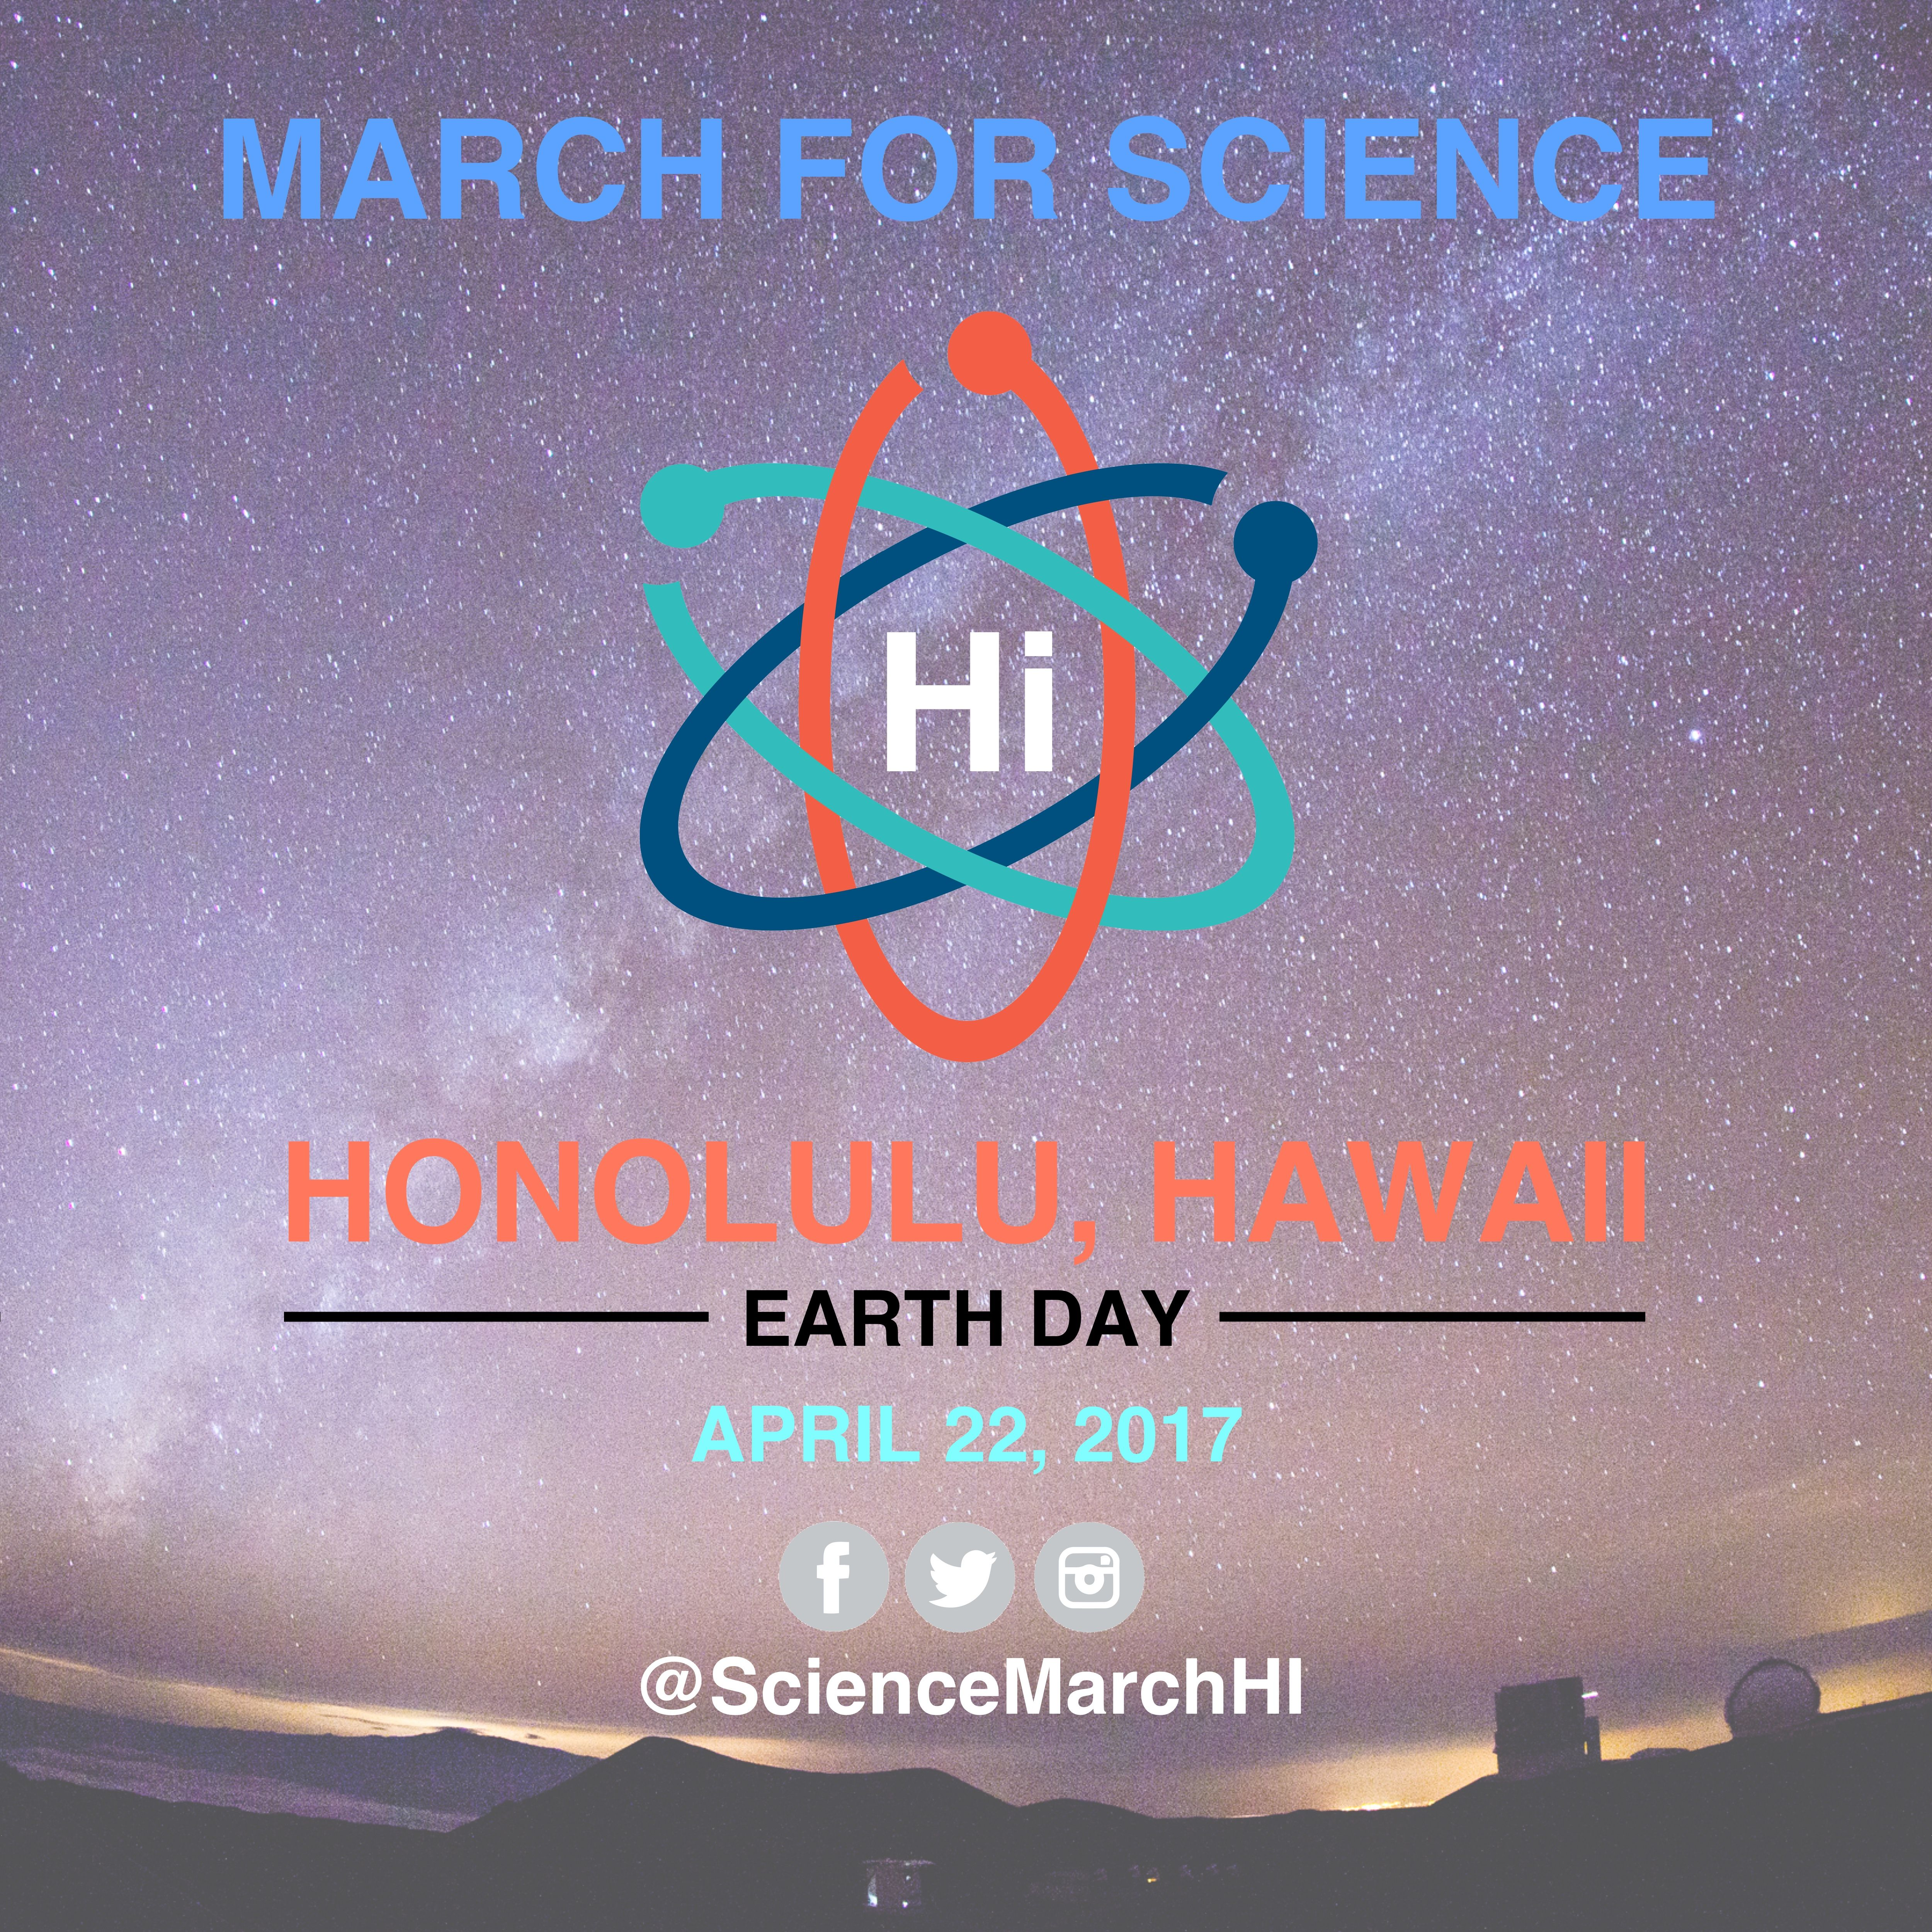 Mark your calendars for the Science March in Honolulu on Earth Day, April 22, 2017. #sciencemarch #marchforscience #science #honolulu #hawaii